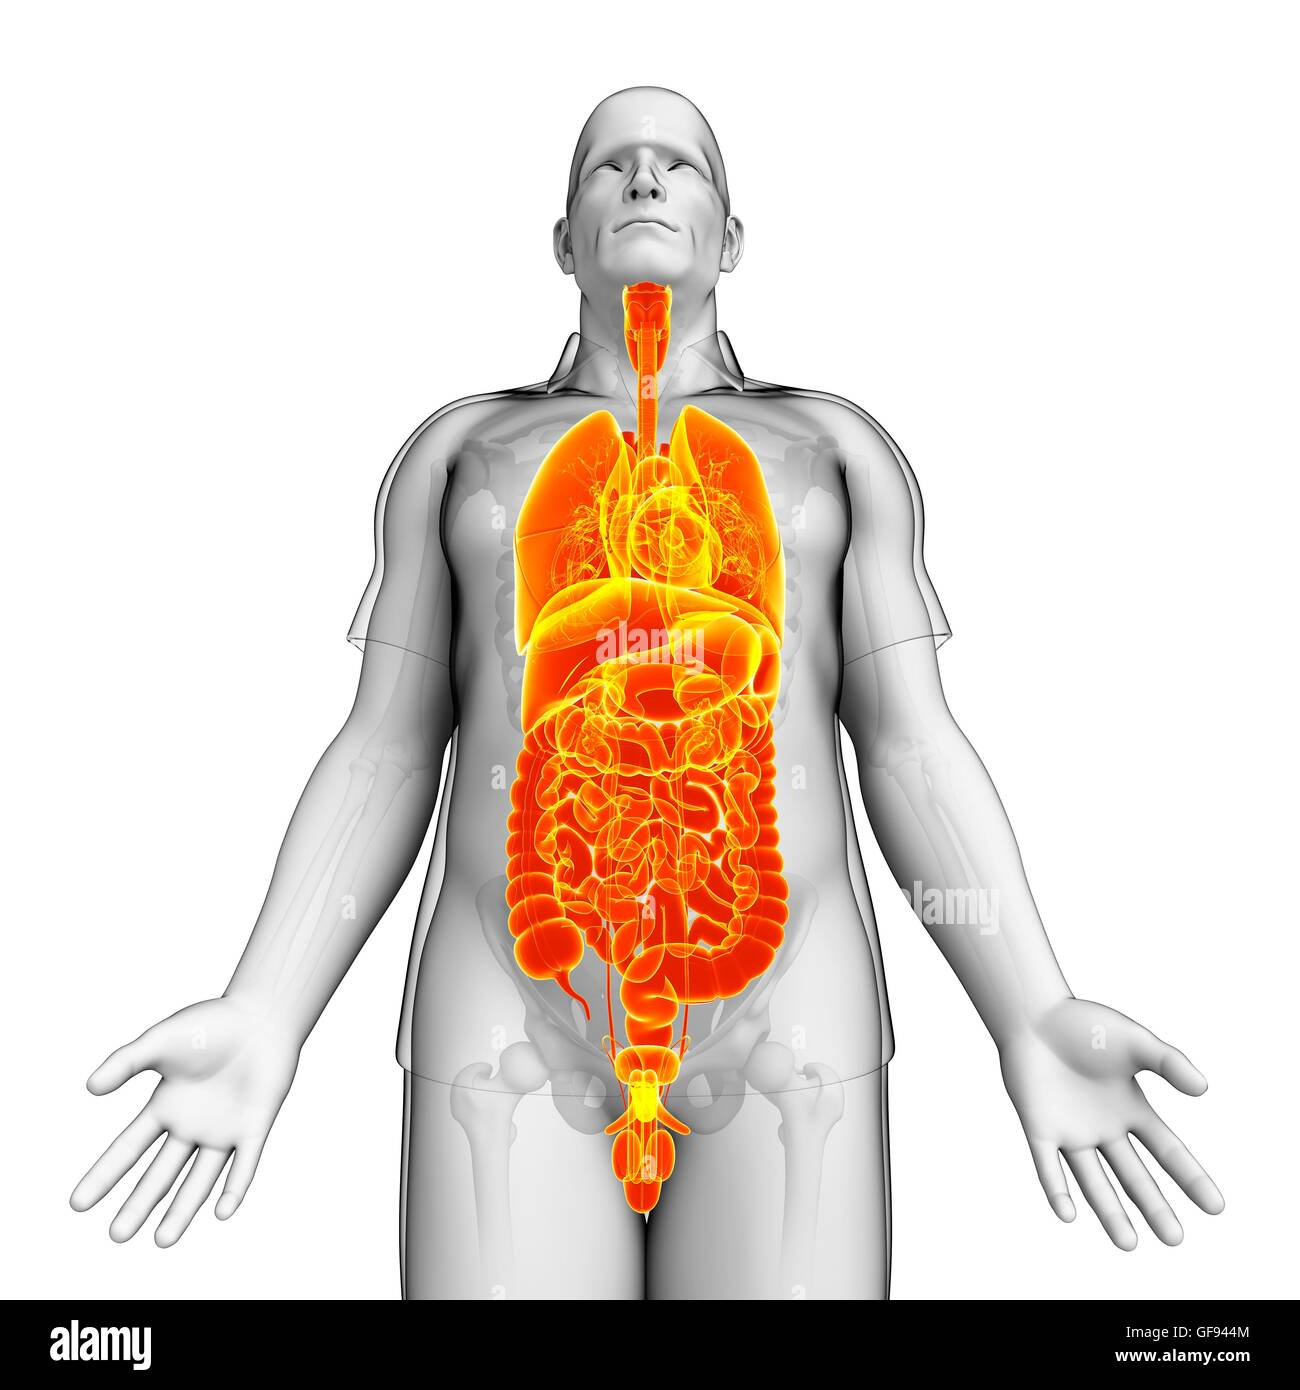 Internal Organs Torso Stock Photos & Internal Organs Torso Stock ...